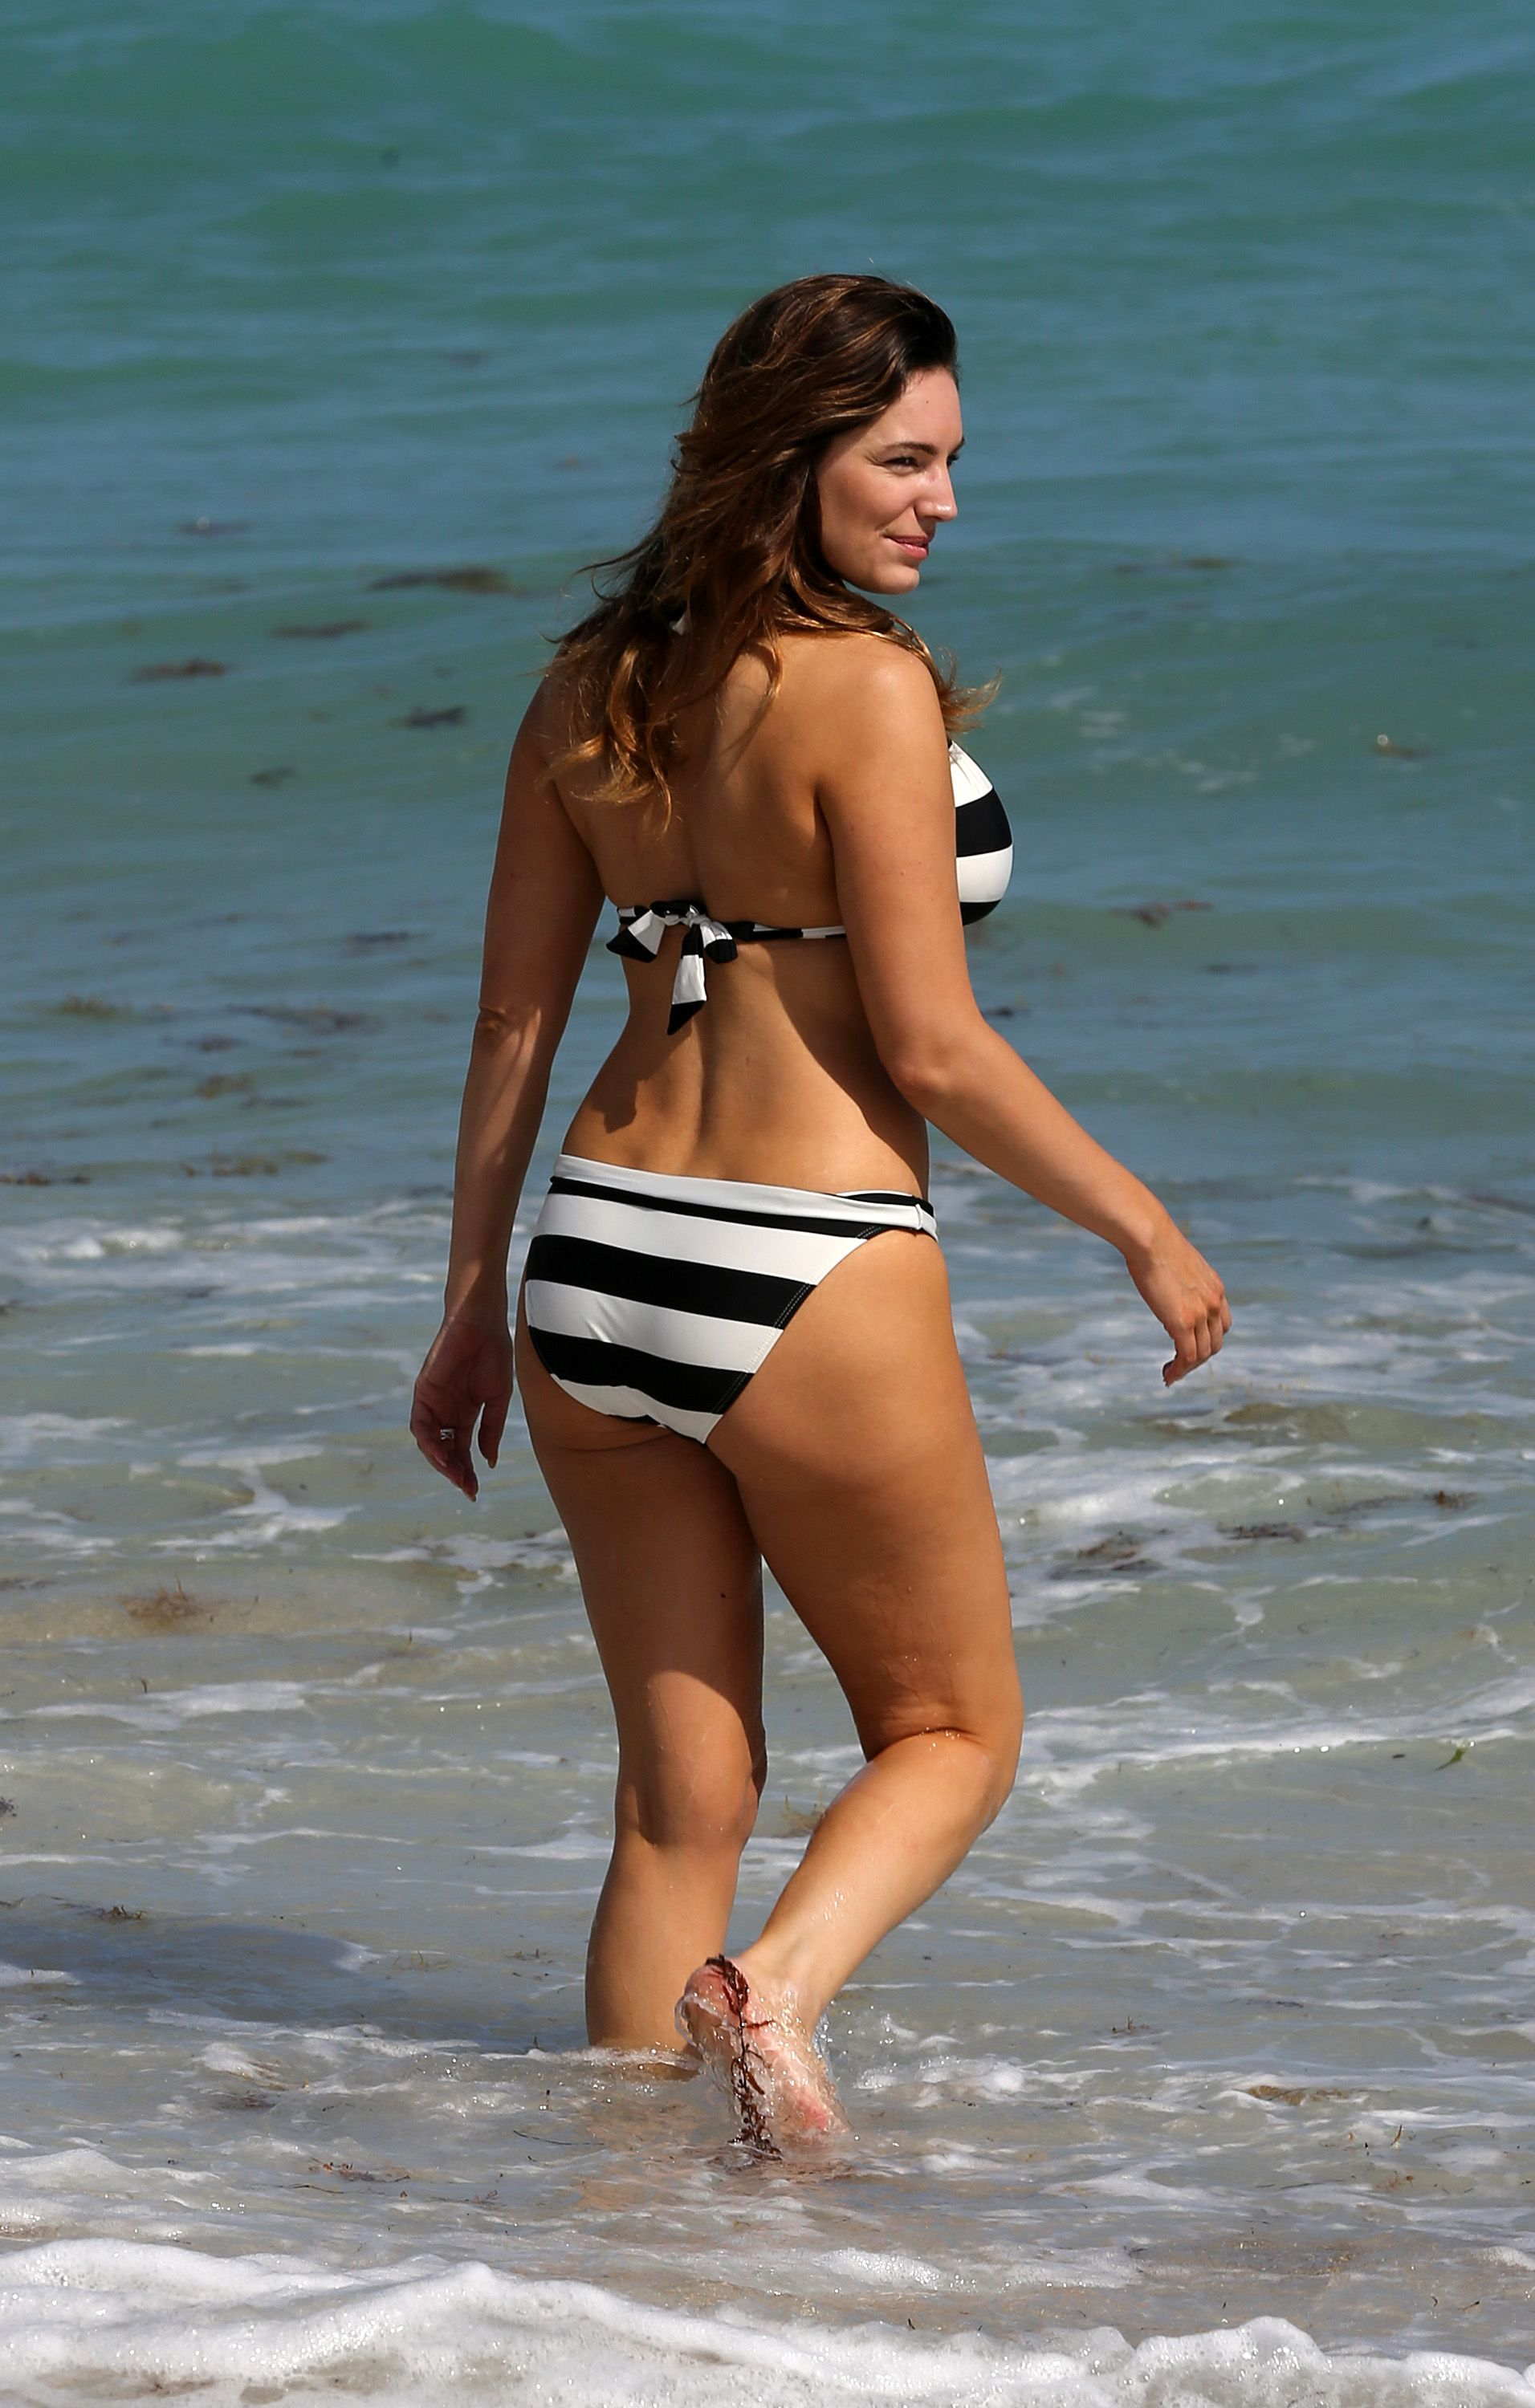 4b3a81f5e0 Kelly Brook 2014 Feb 3 Bikini Miami Beach 0045